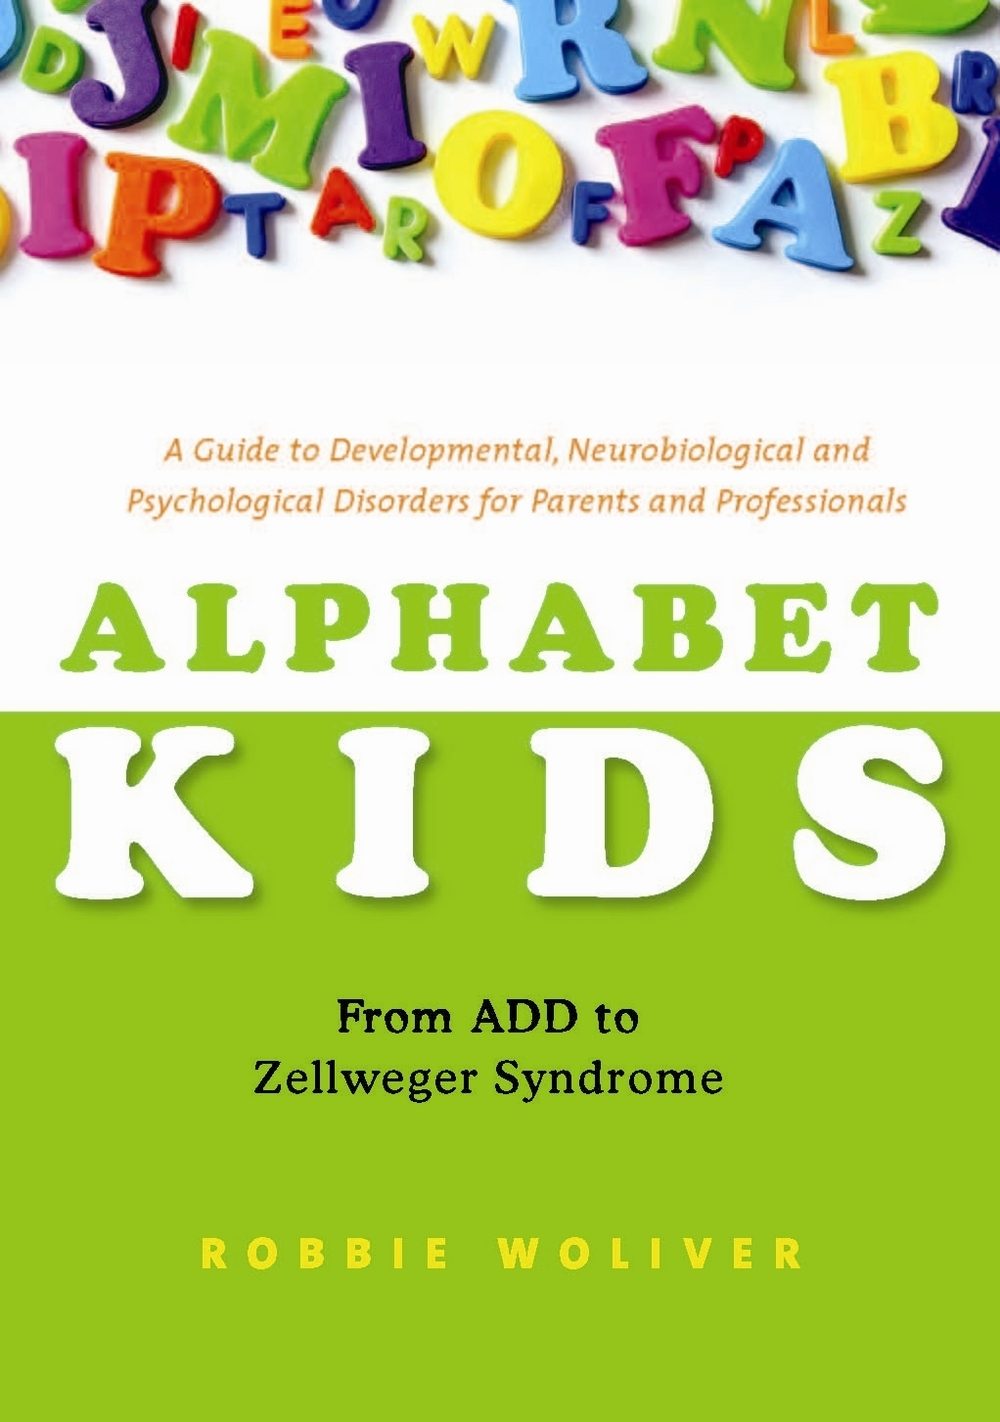 Alphabet Kids - From ADD to Zellweger Syndrome A Guide to Developmental,  Neurobiological and Psychological Disorders for Parents and Professionals